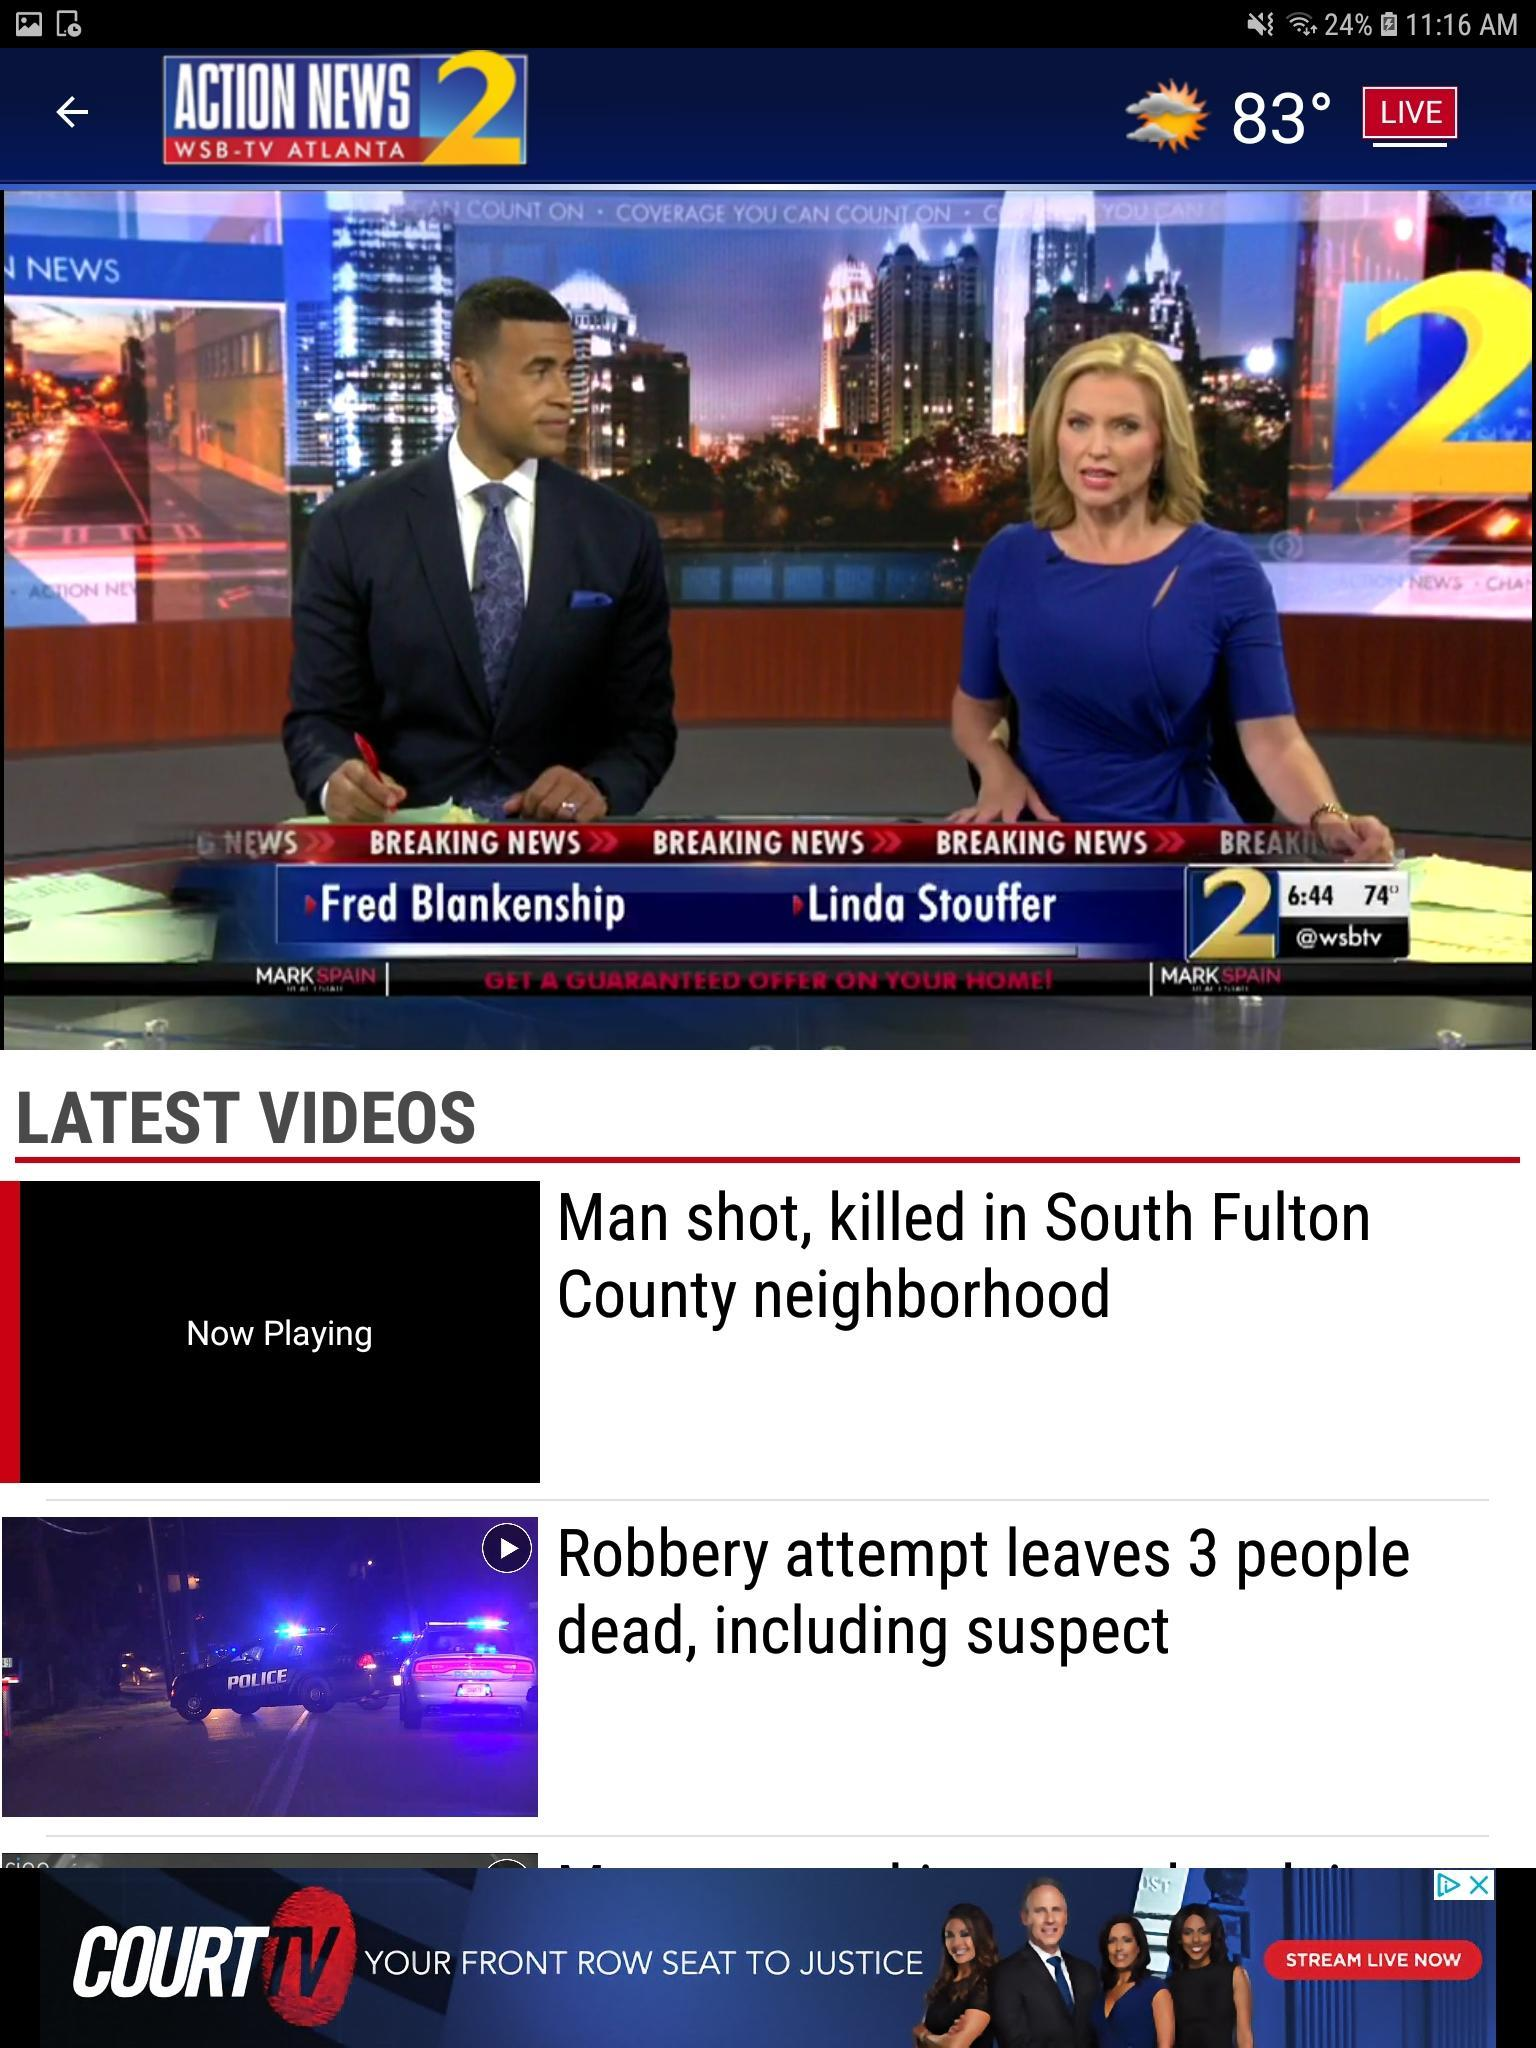 WSBTV News for Android - APK Download